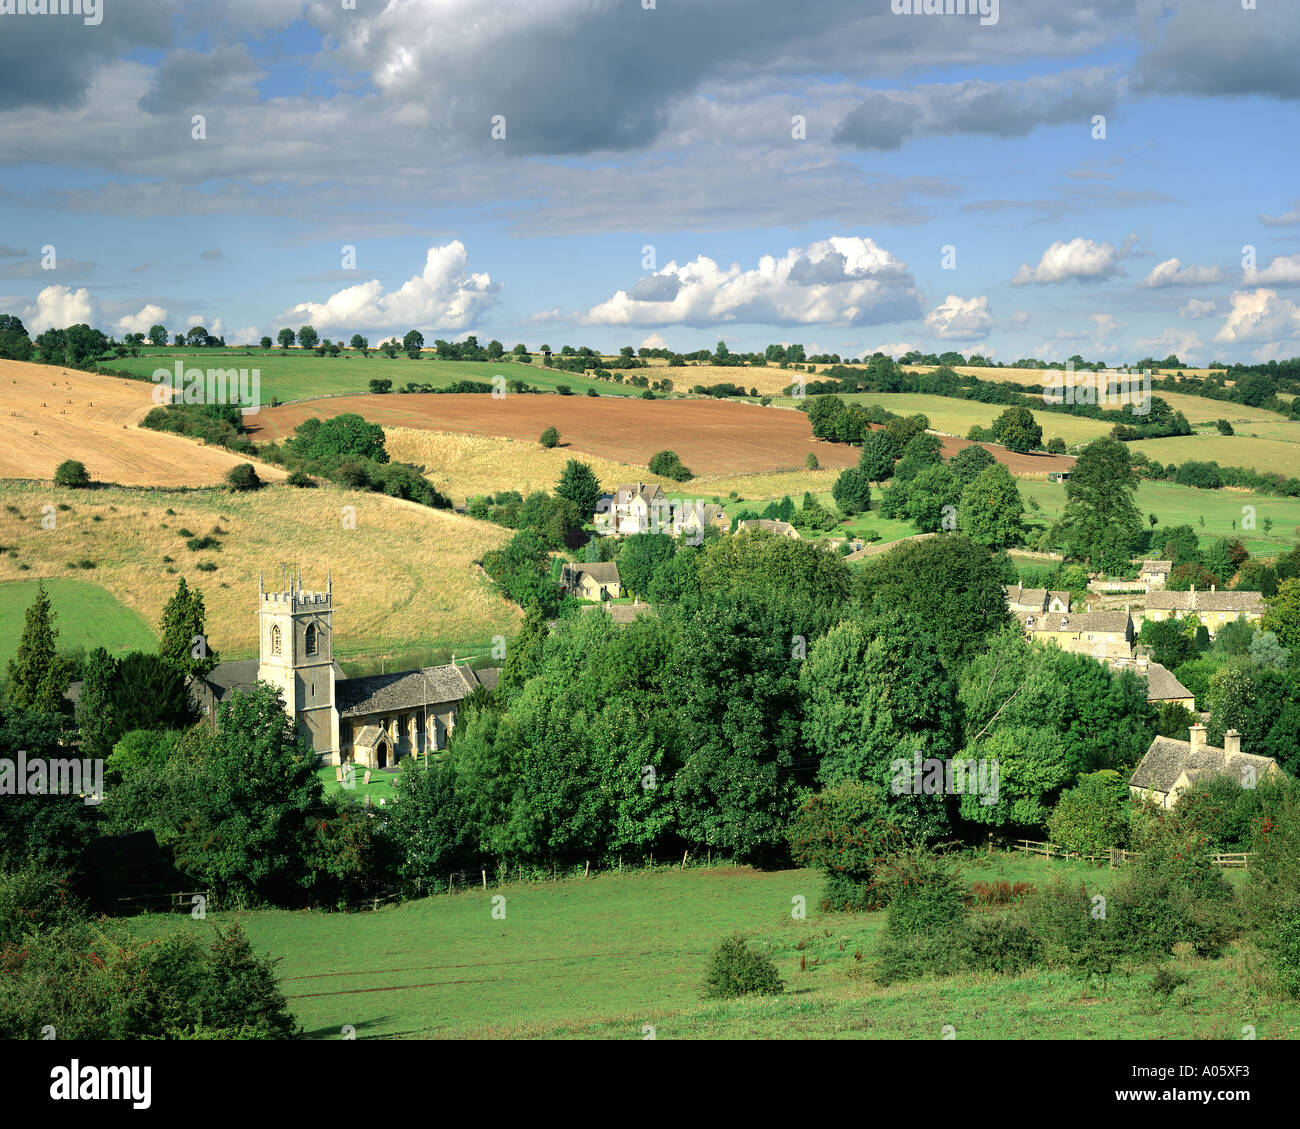 GB GLOUCESTERSHIRE Naunton village in the Cotswolds Stock Photo